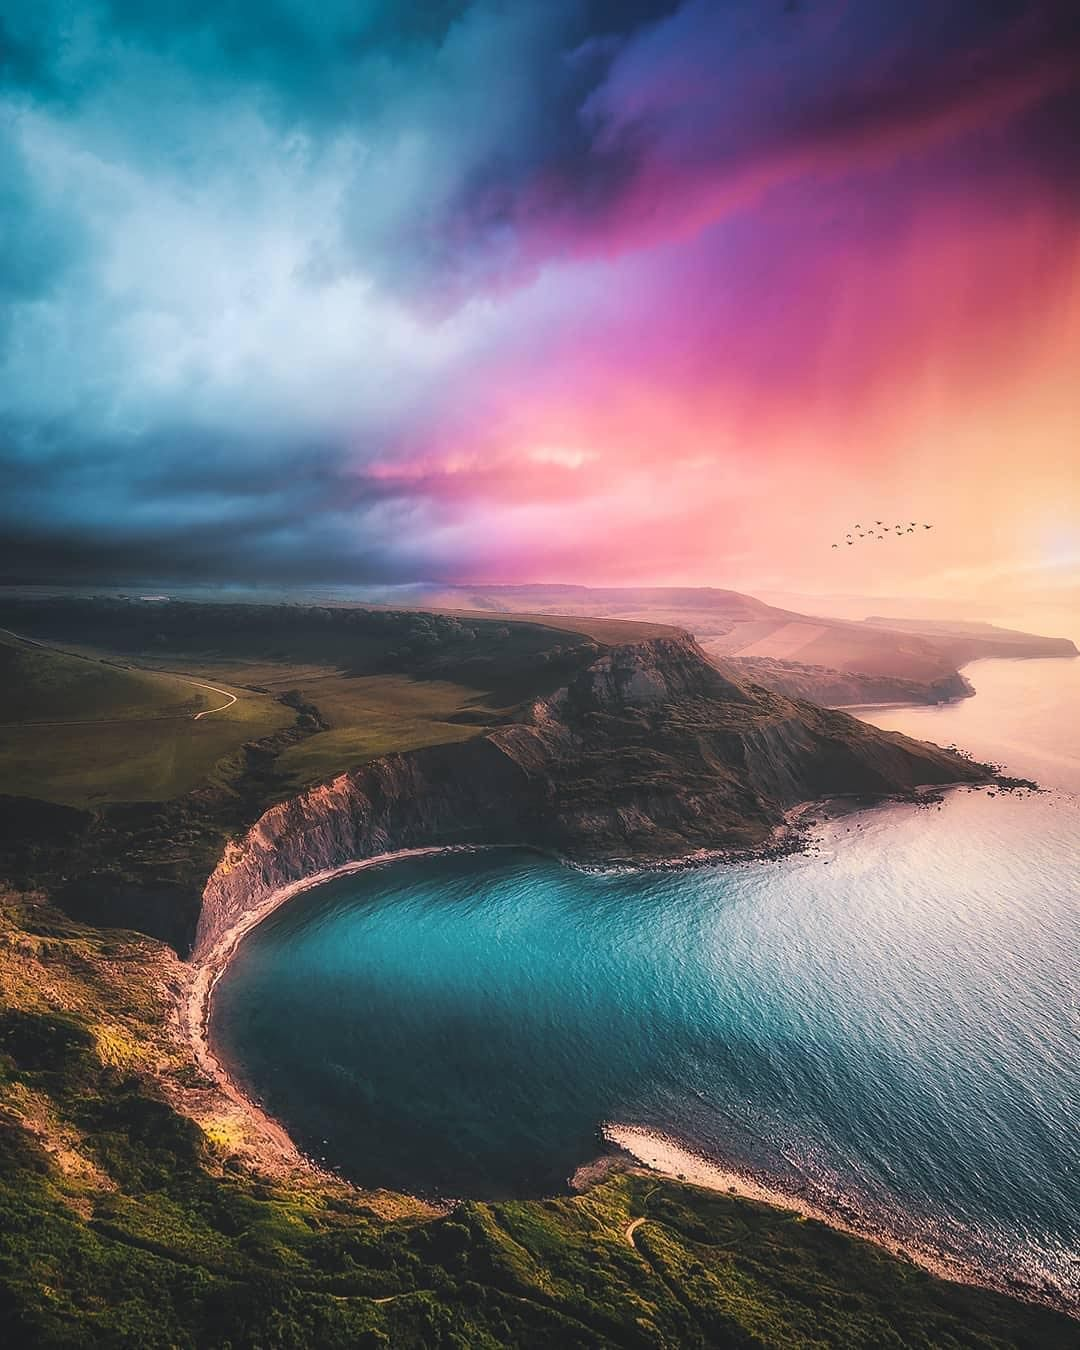 What Is This Beautiful Landscape Wallpaper Beautiful Nature